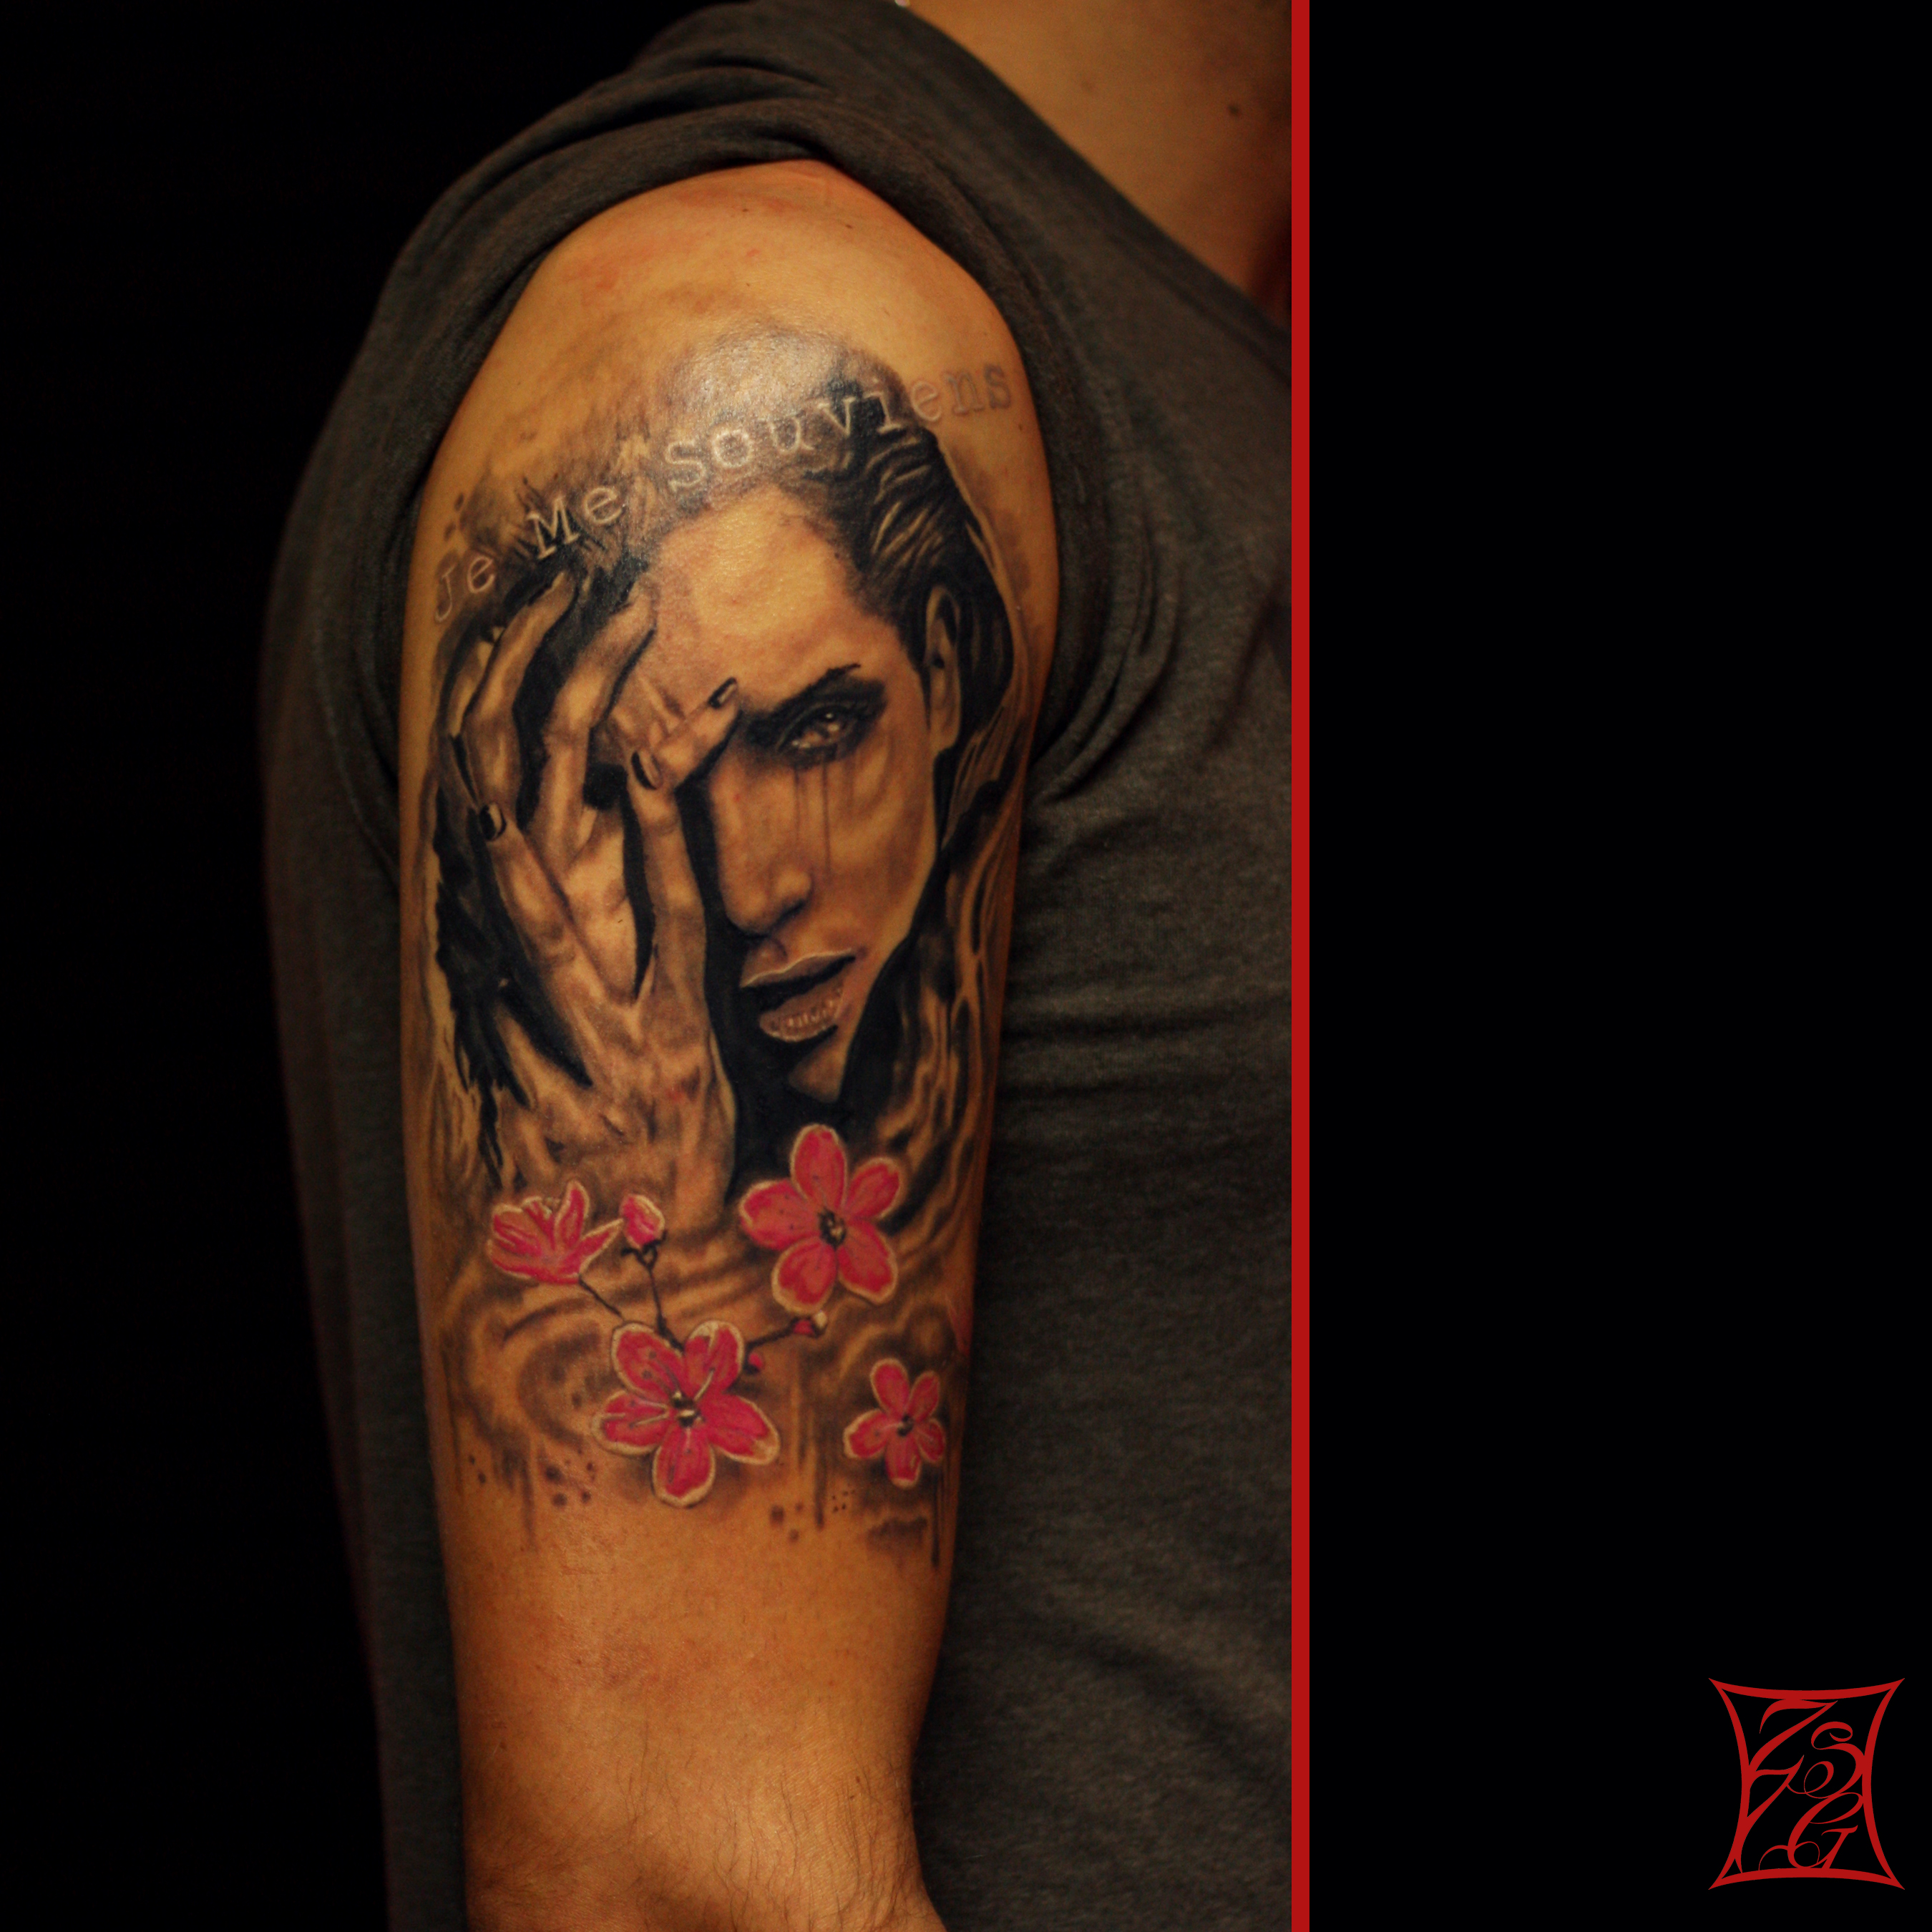 c444180bd Girl Portrait Tattoo Montreal Gabor Zsil Arm